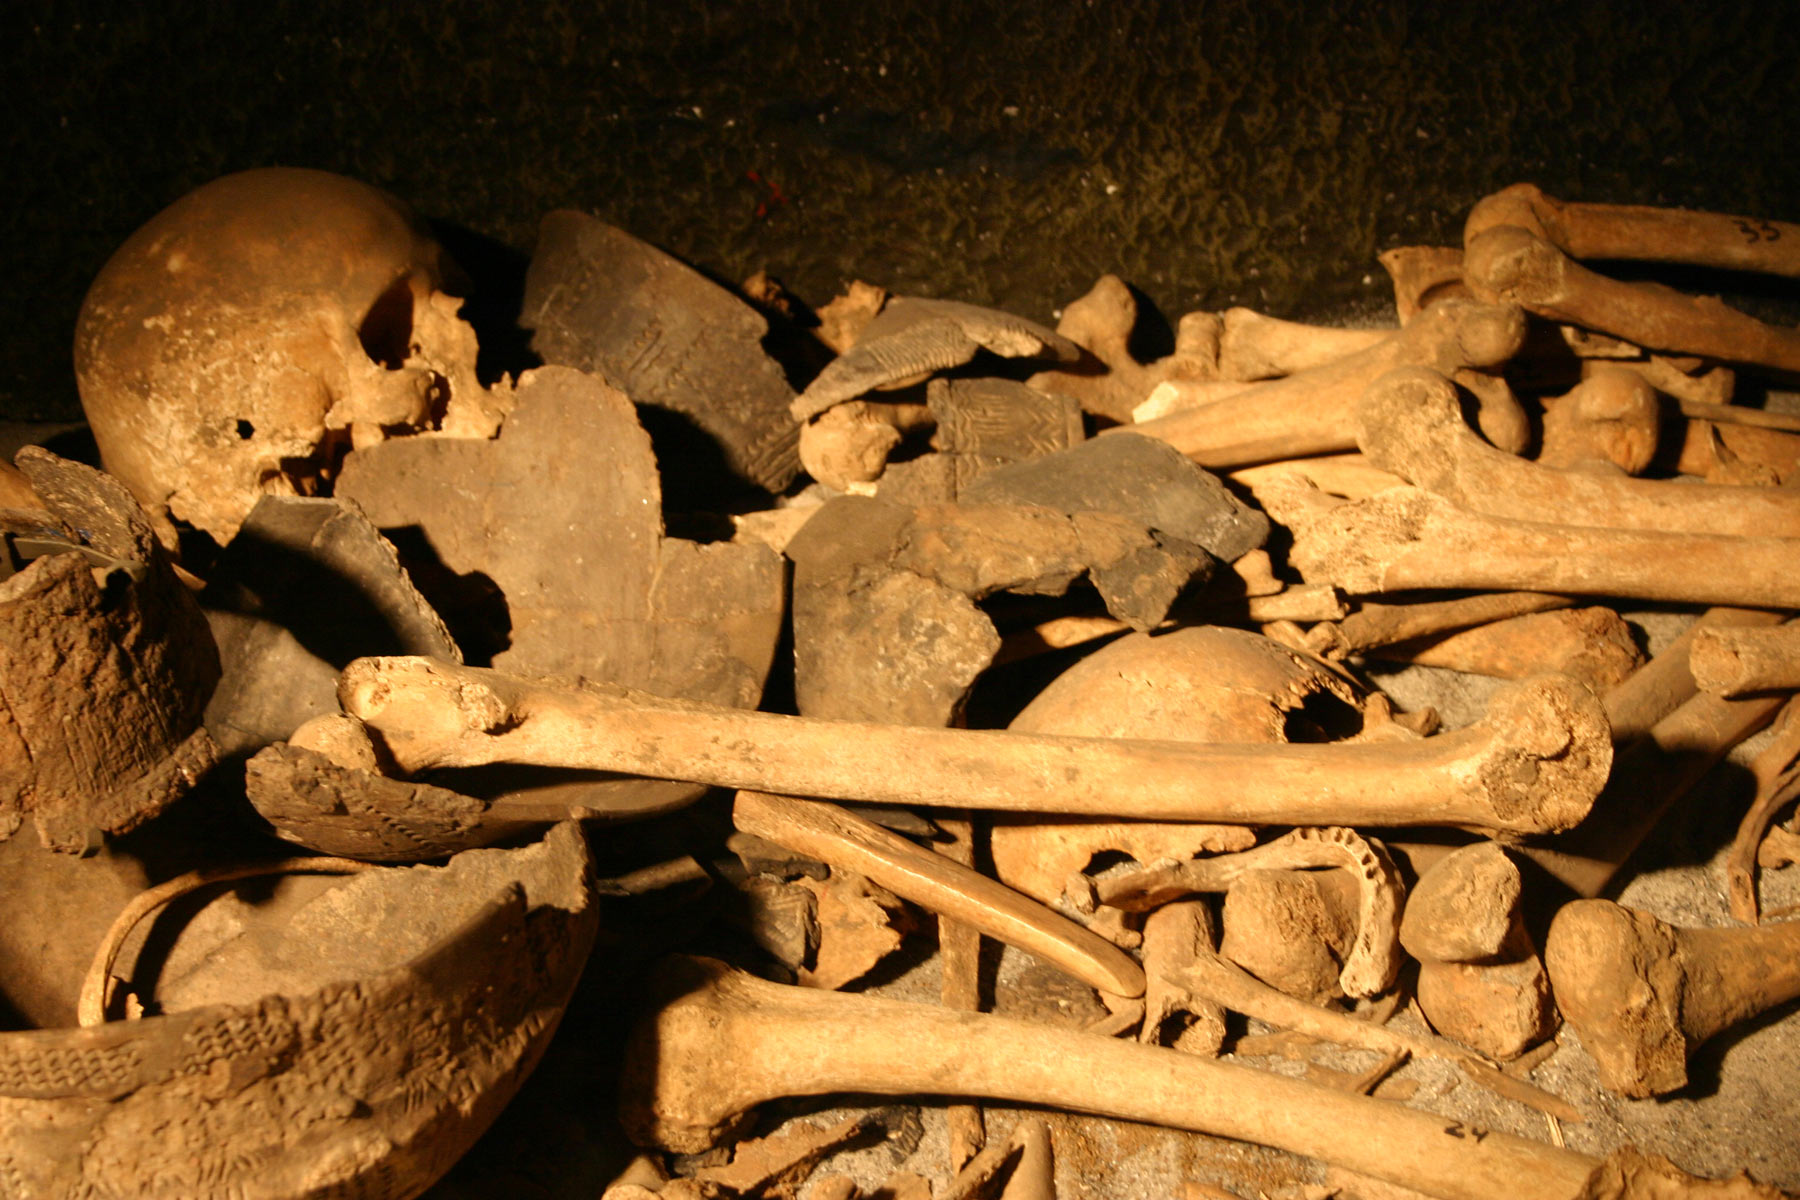 Pile of bones and skulls, Remains, Skulls, Pile, Bones, HQ Photo